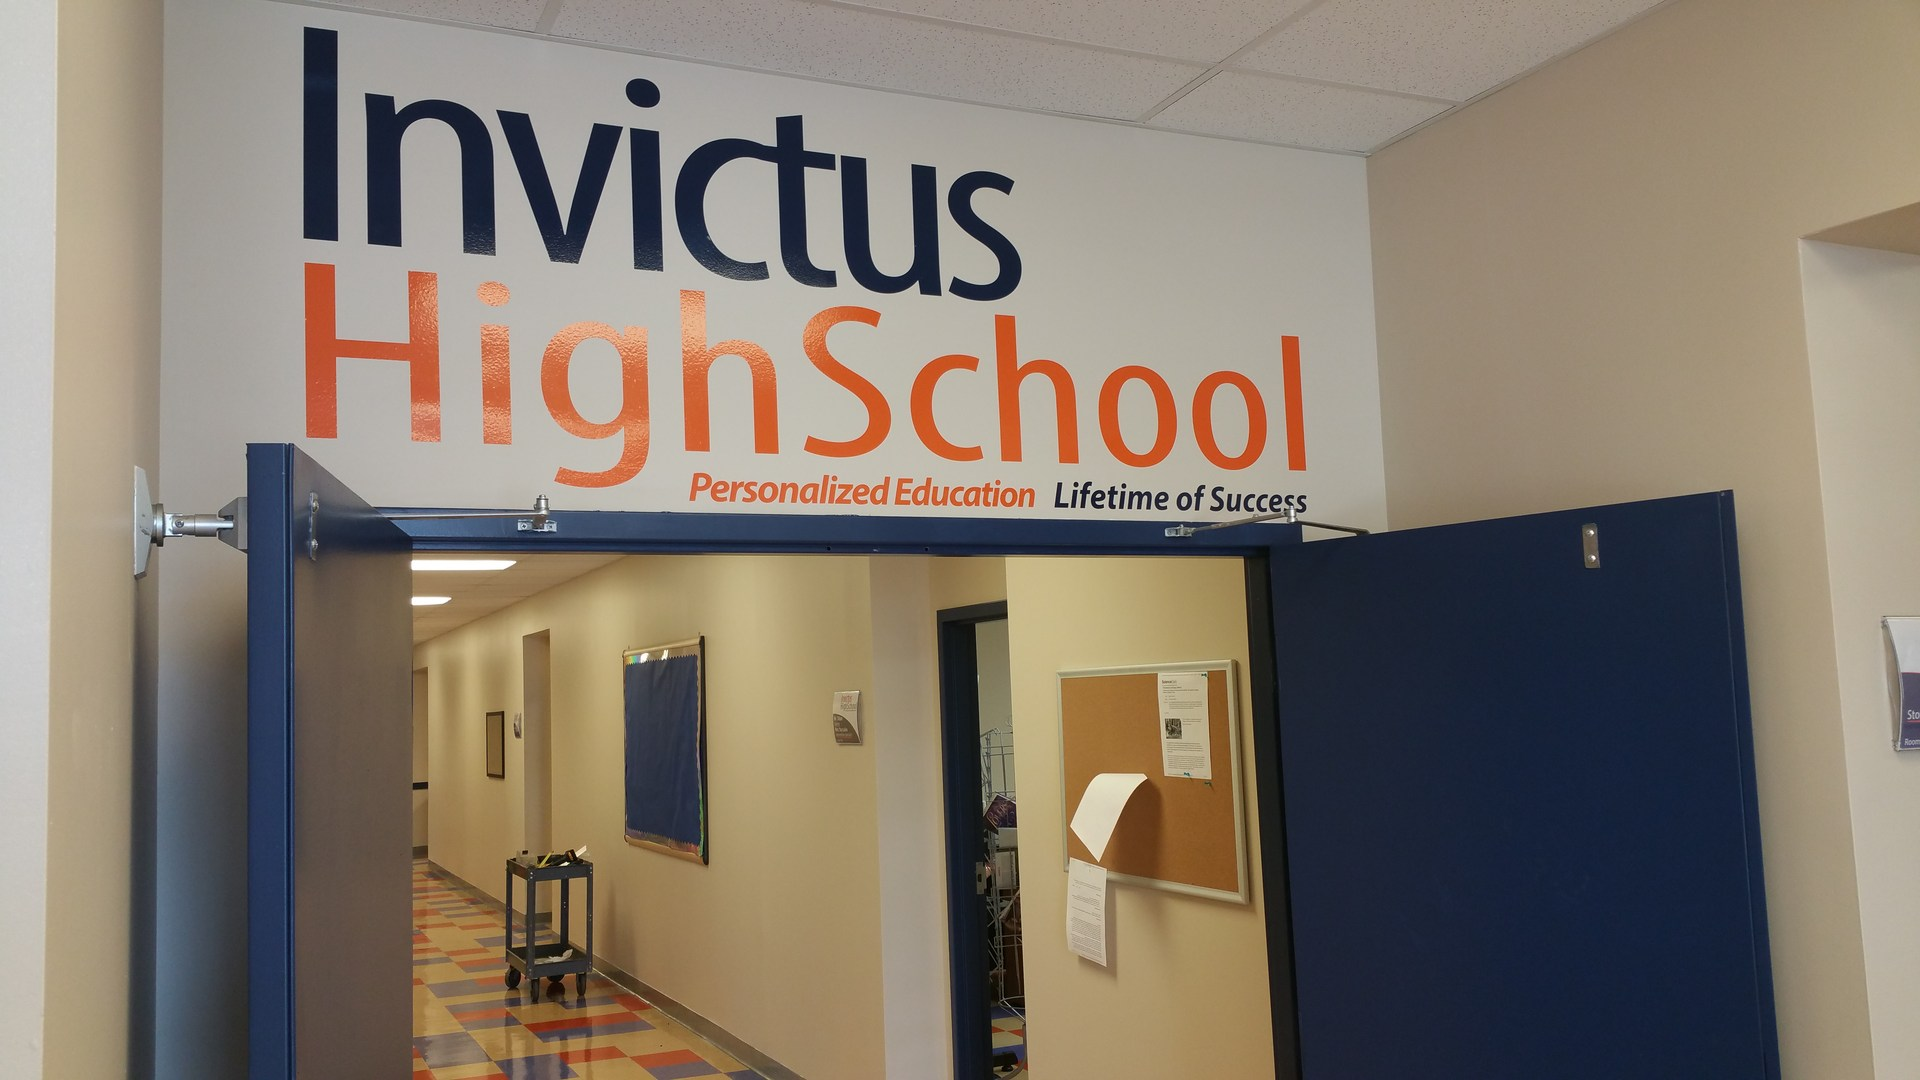 Doors are open at Invictus High School Cleveland